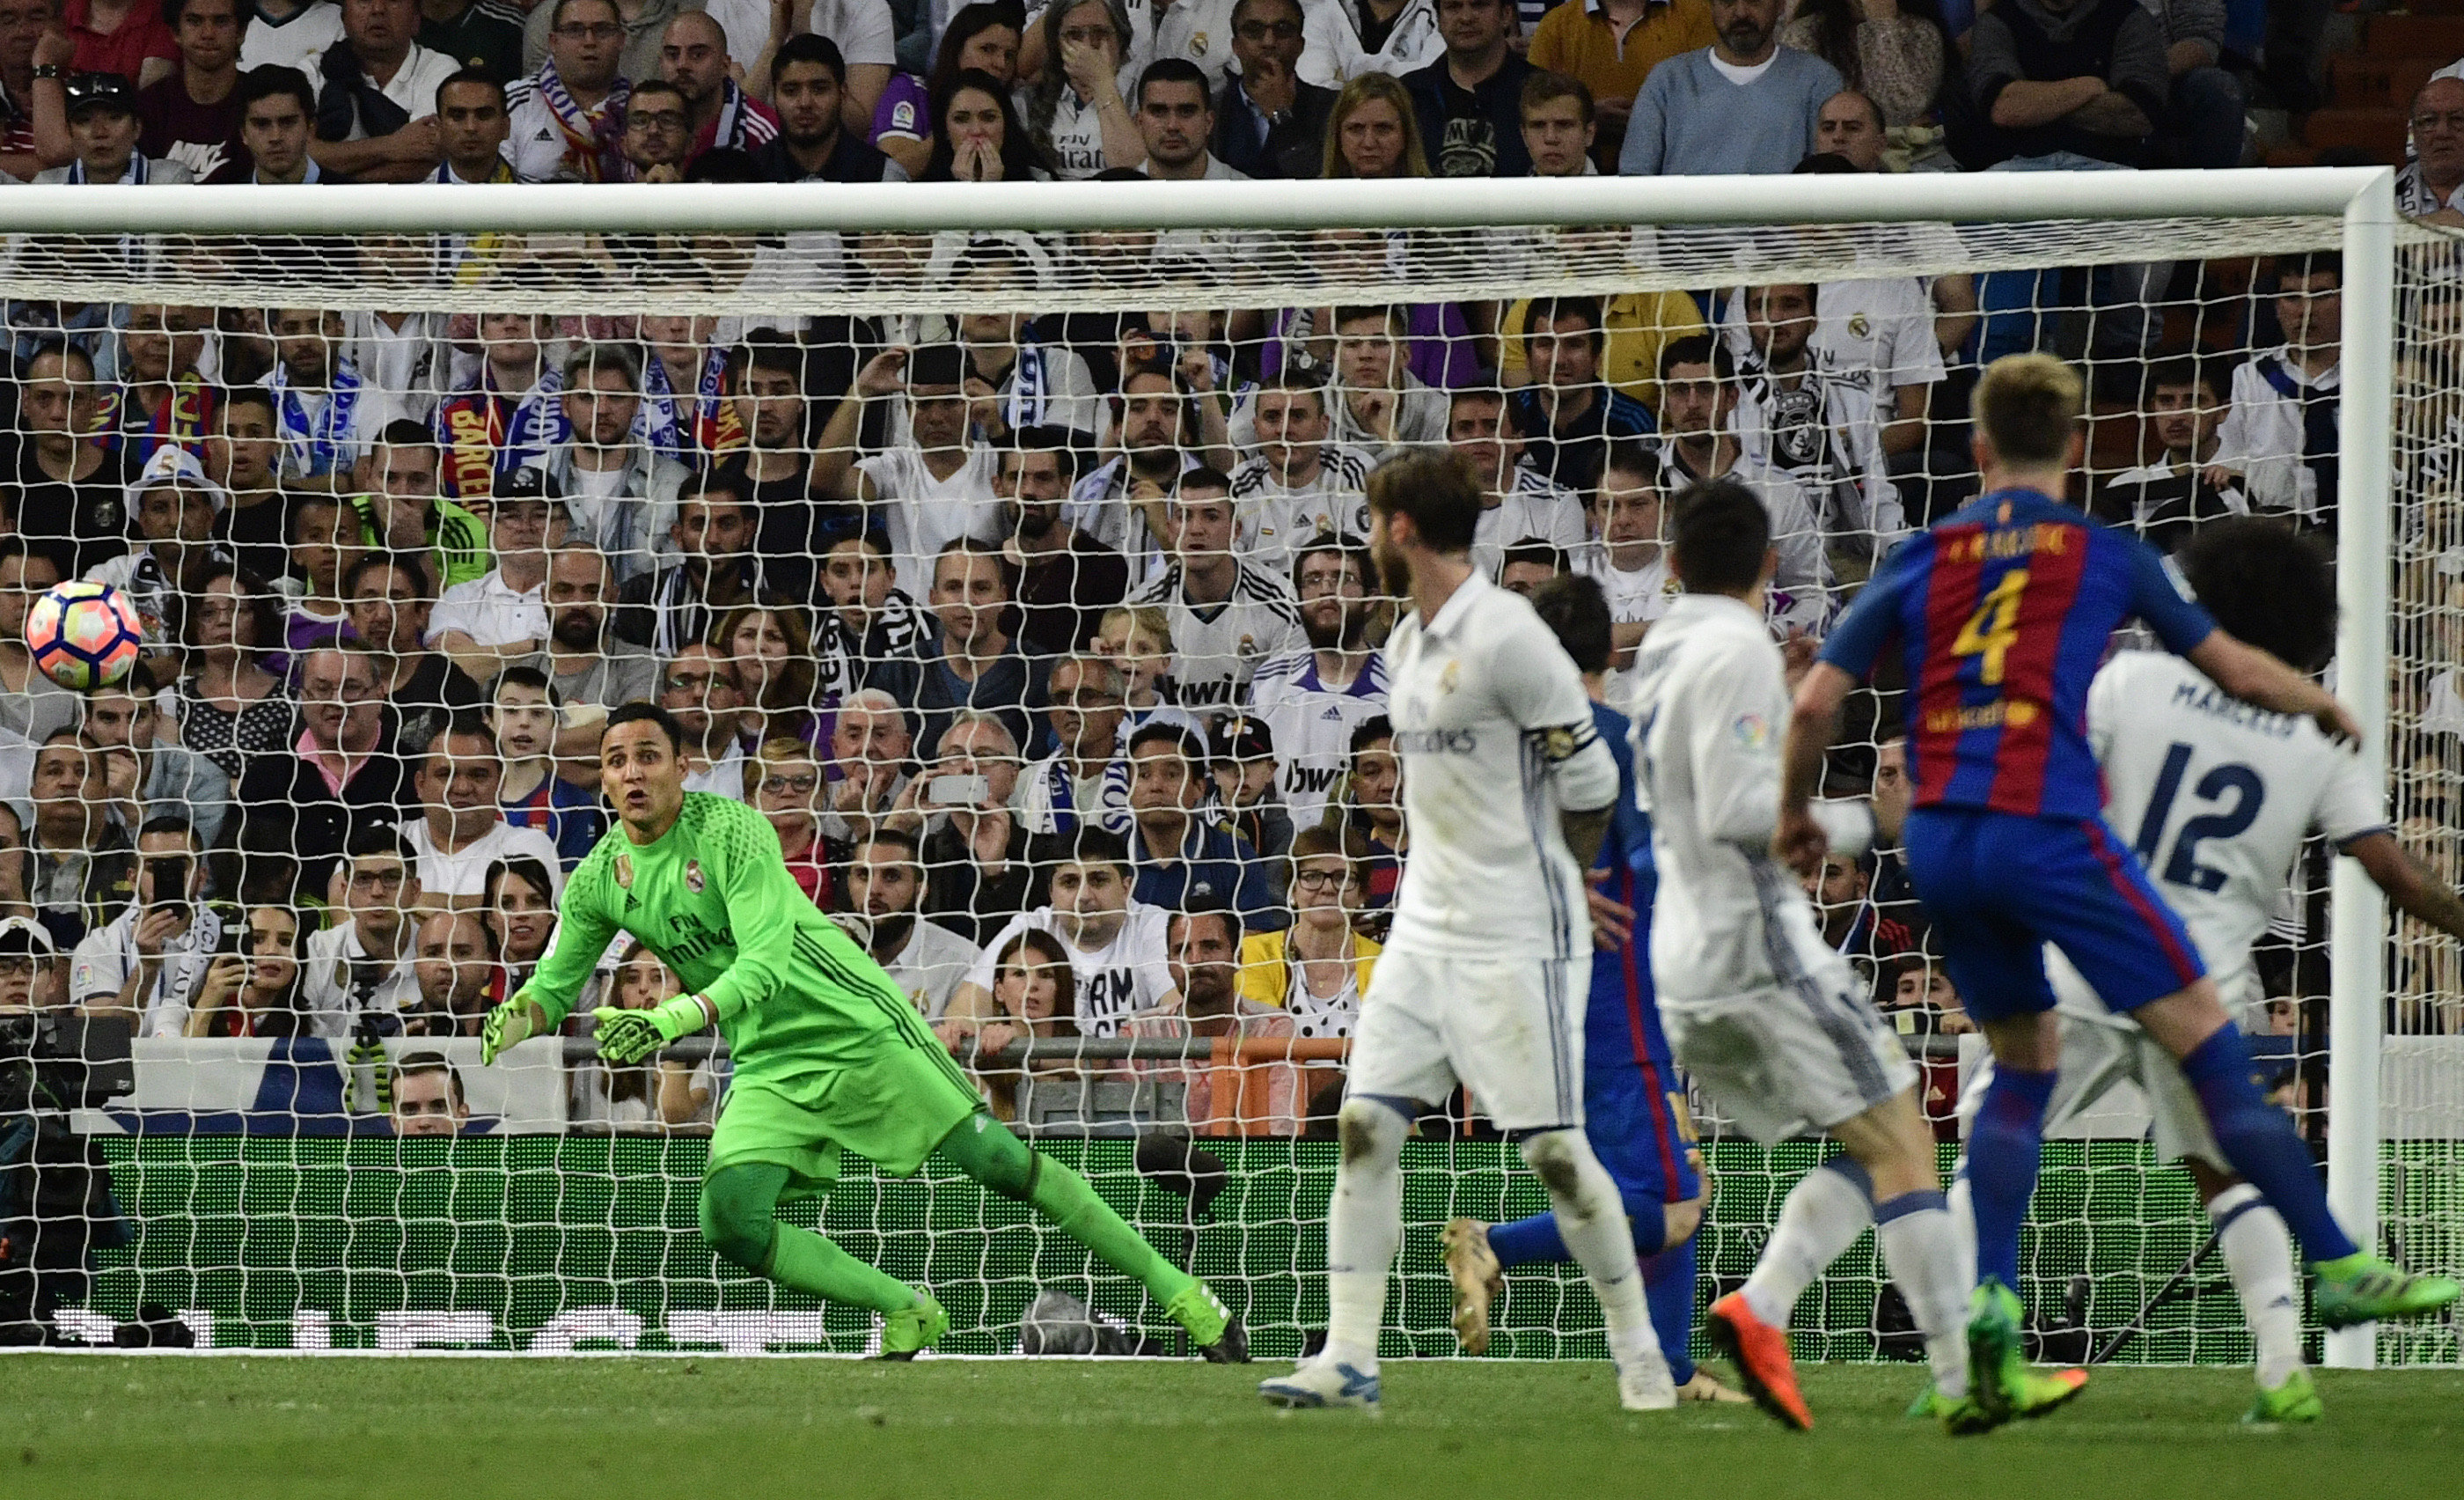 ¡HAY LIGA! BARCELONA Y MESSI GANAN 3-2 AL REAL MADRID